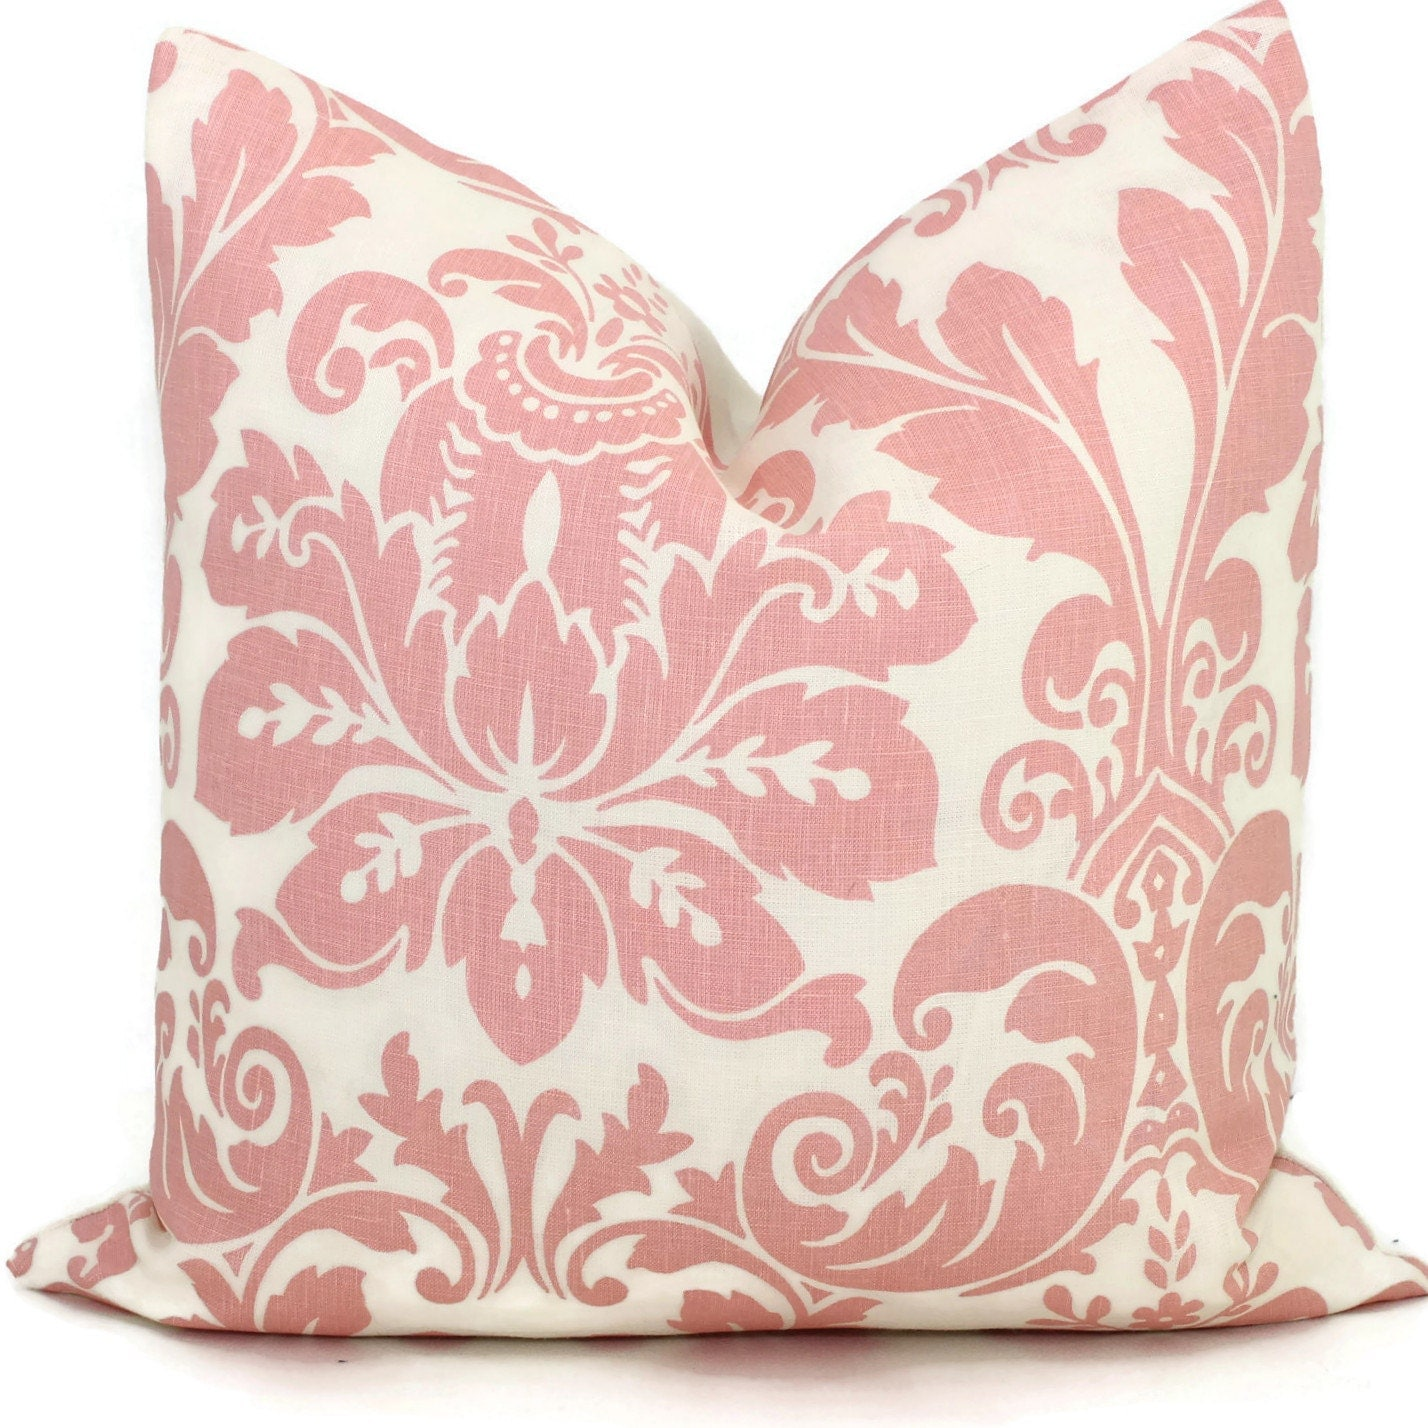 Queen Throw Pillows : Pantone color of the year Rose Quartz Quadrille Pillow Cover